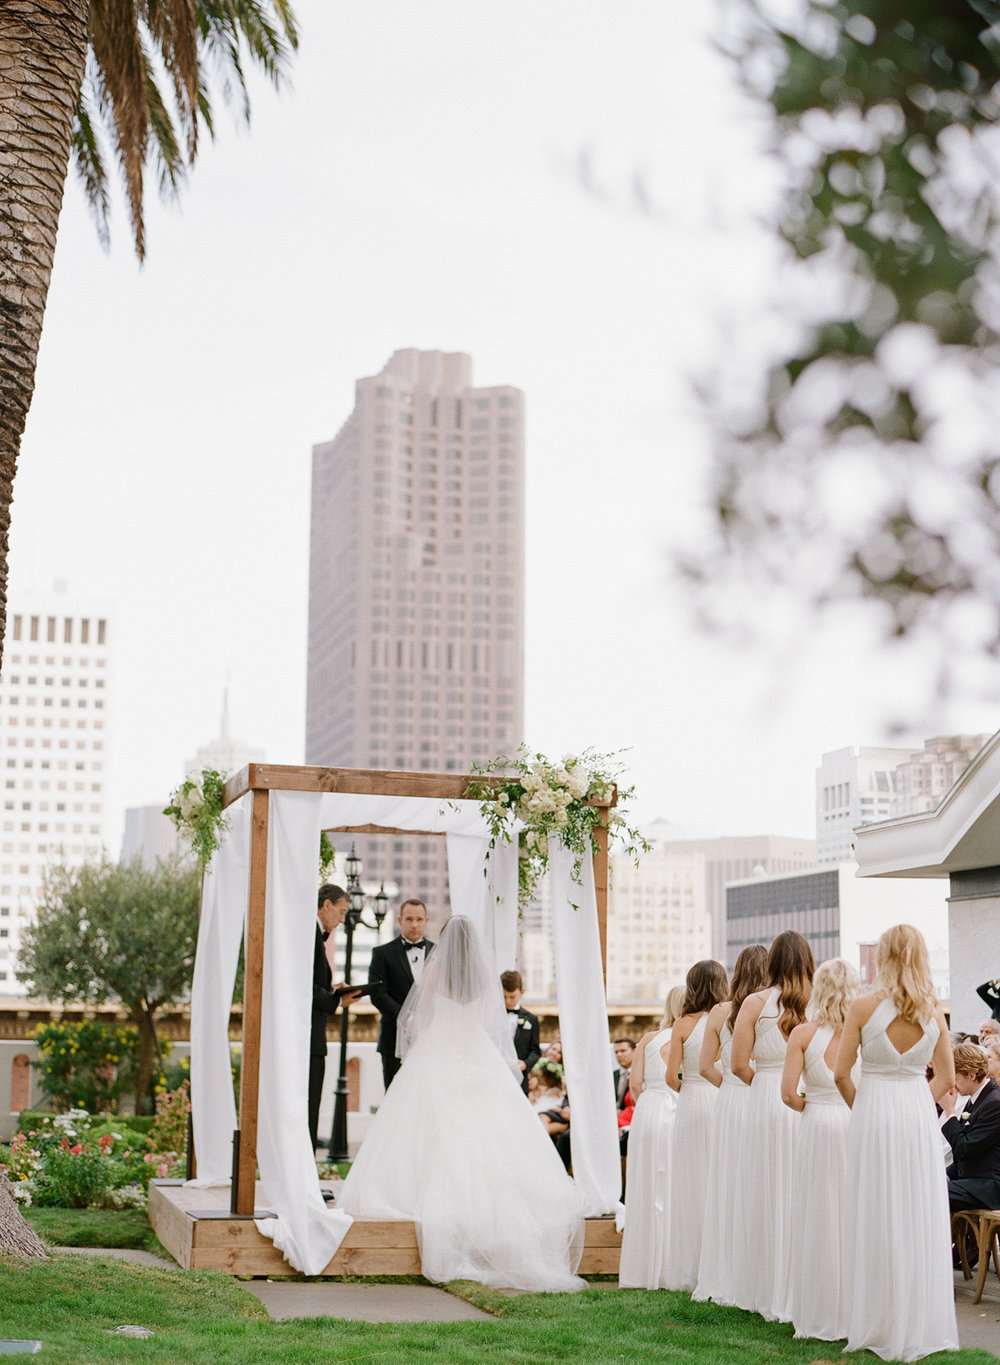 A row of bridesmaids in white gowns look on while Meg & Ben exchange vows under a floral arbor; photo by Sylvie Gil